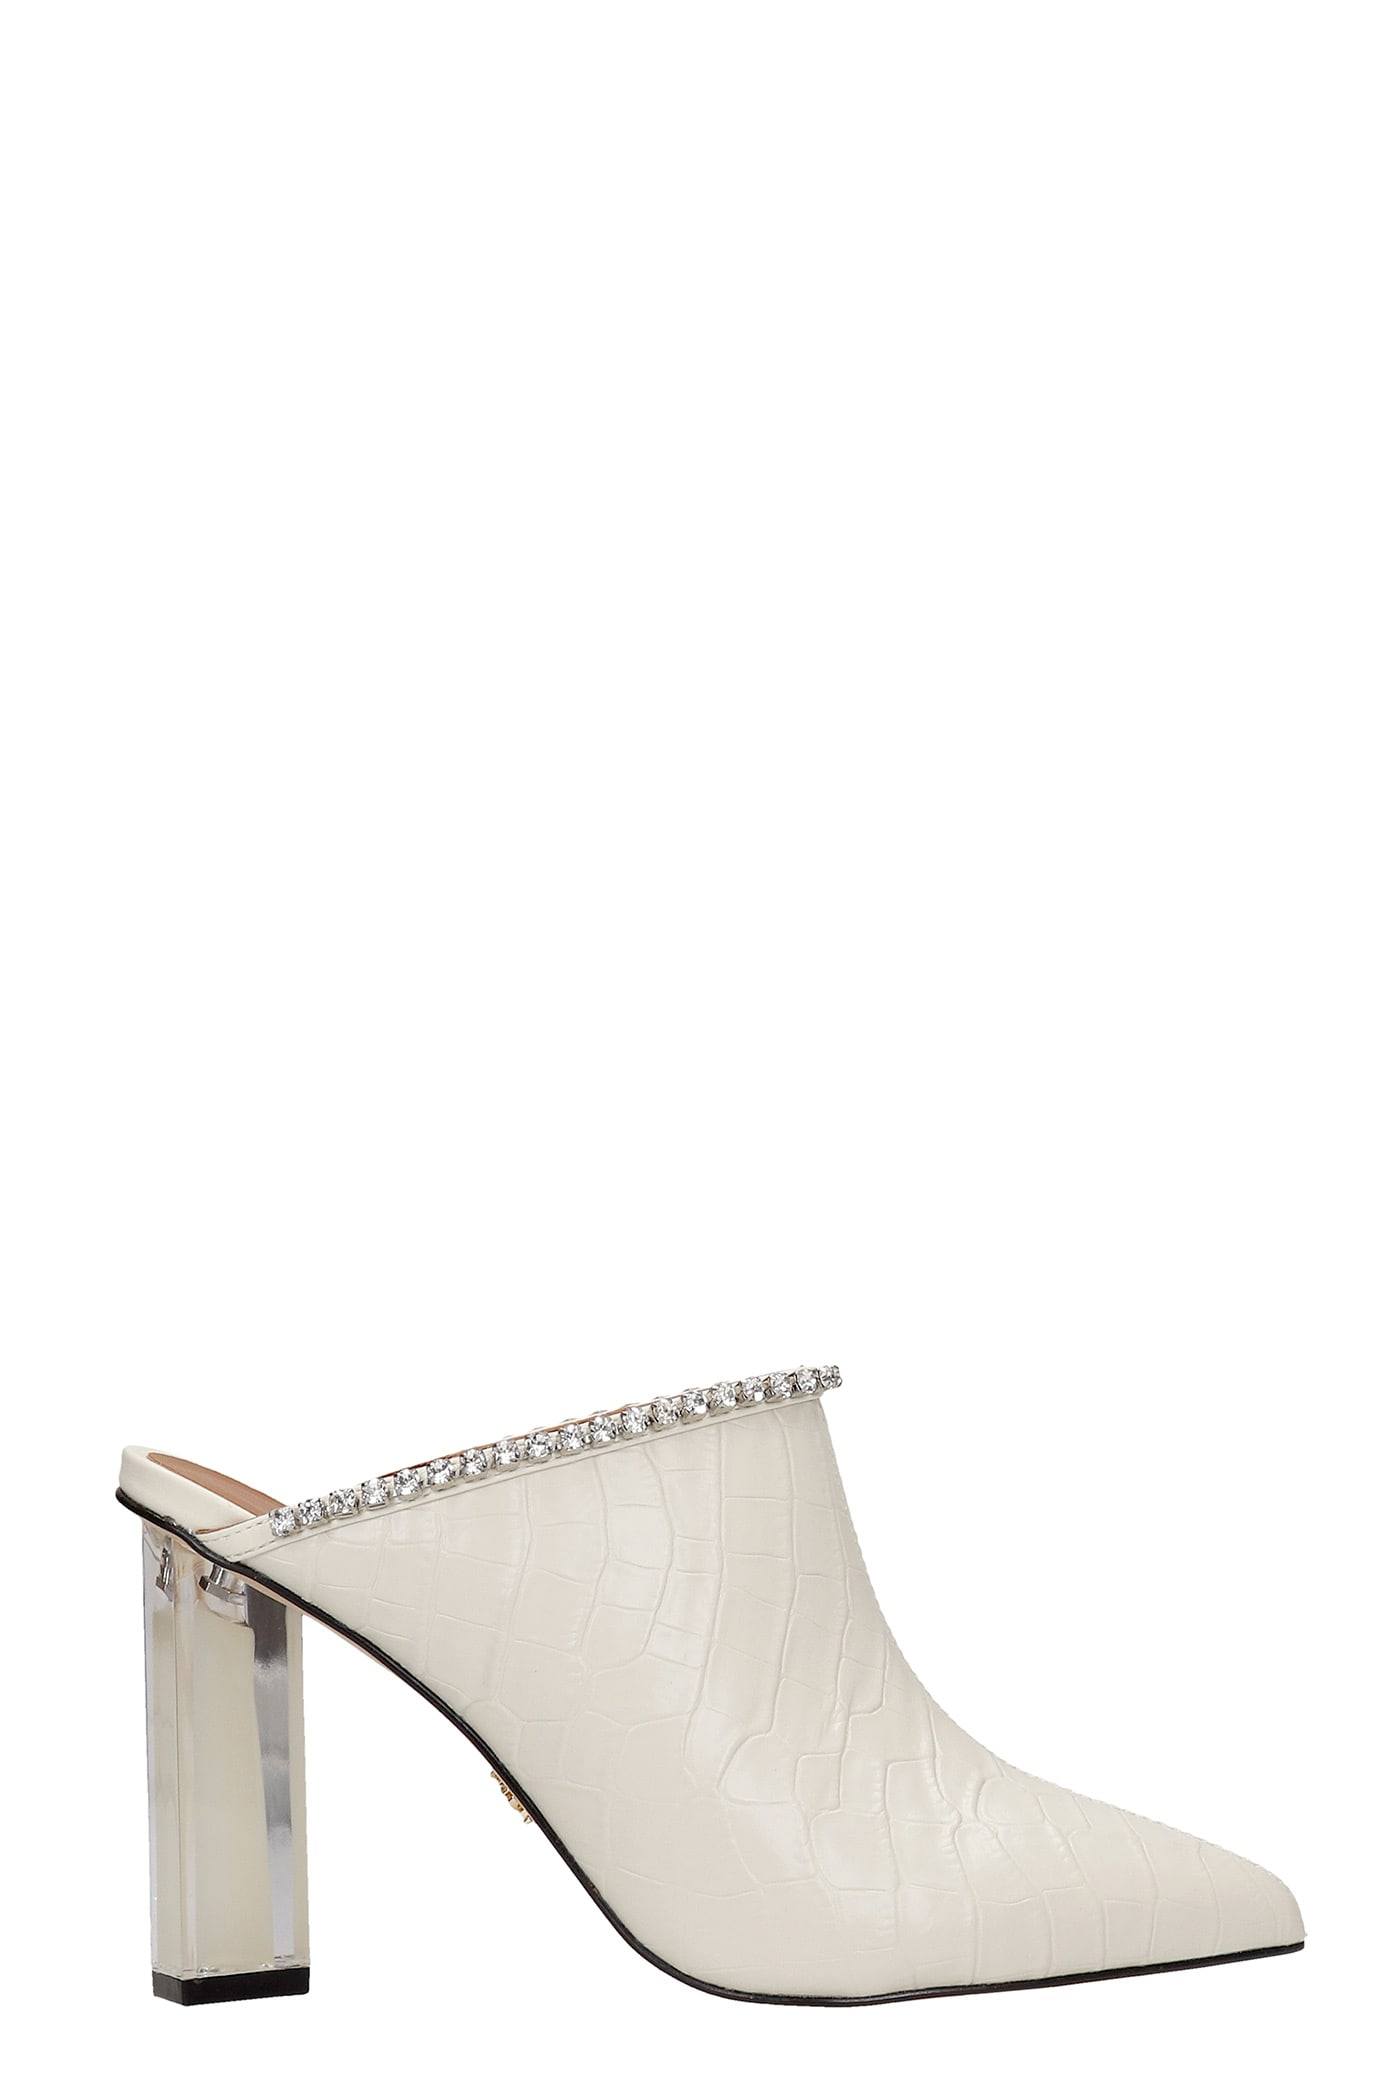 Blare Sandals In Beige Leather